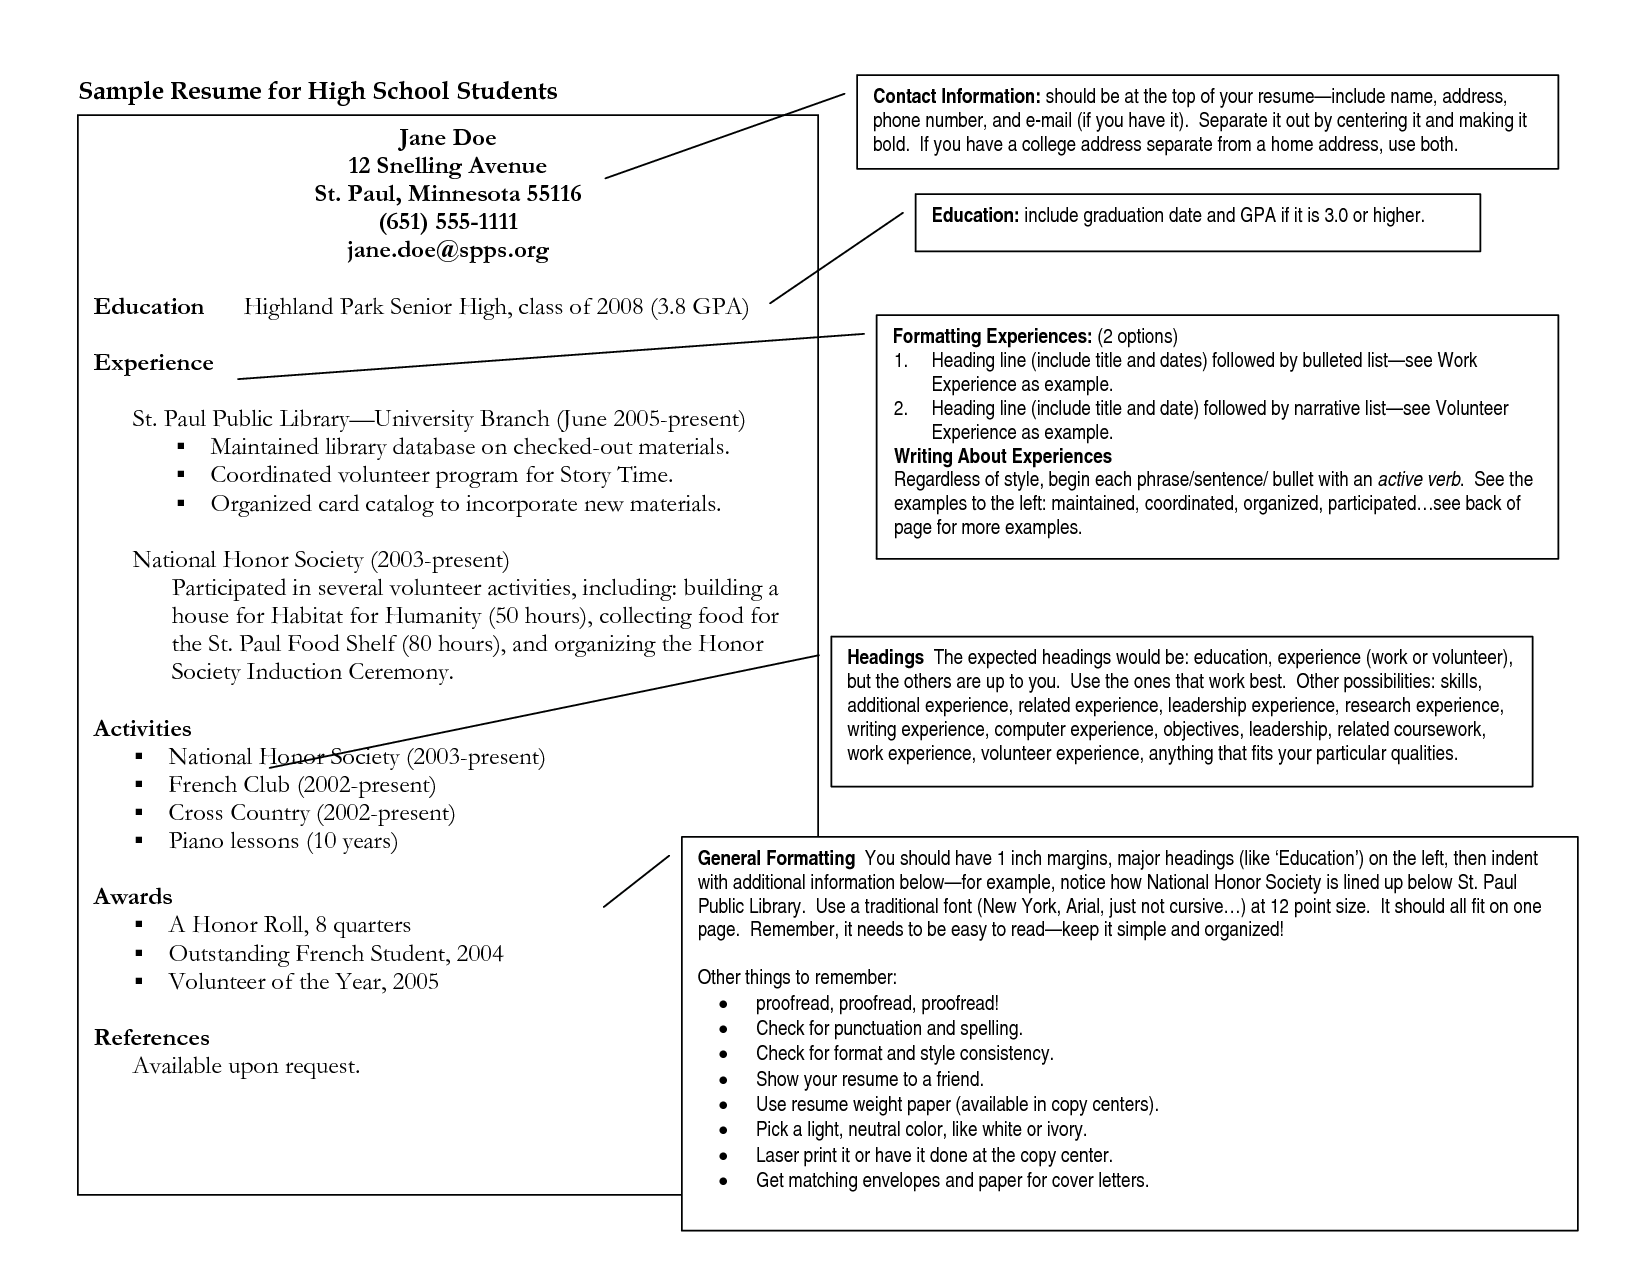 example resume for high school student high school student resume ...